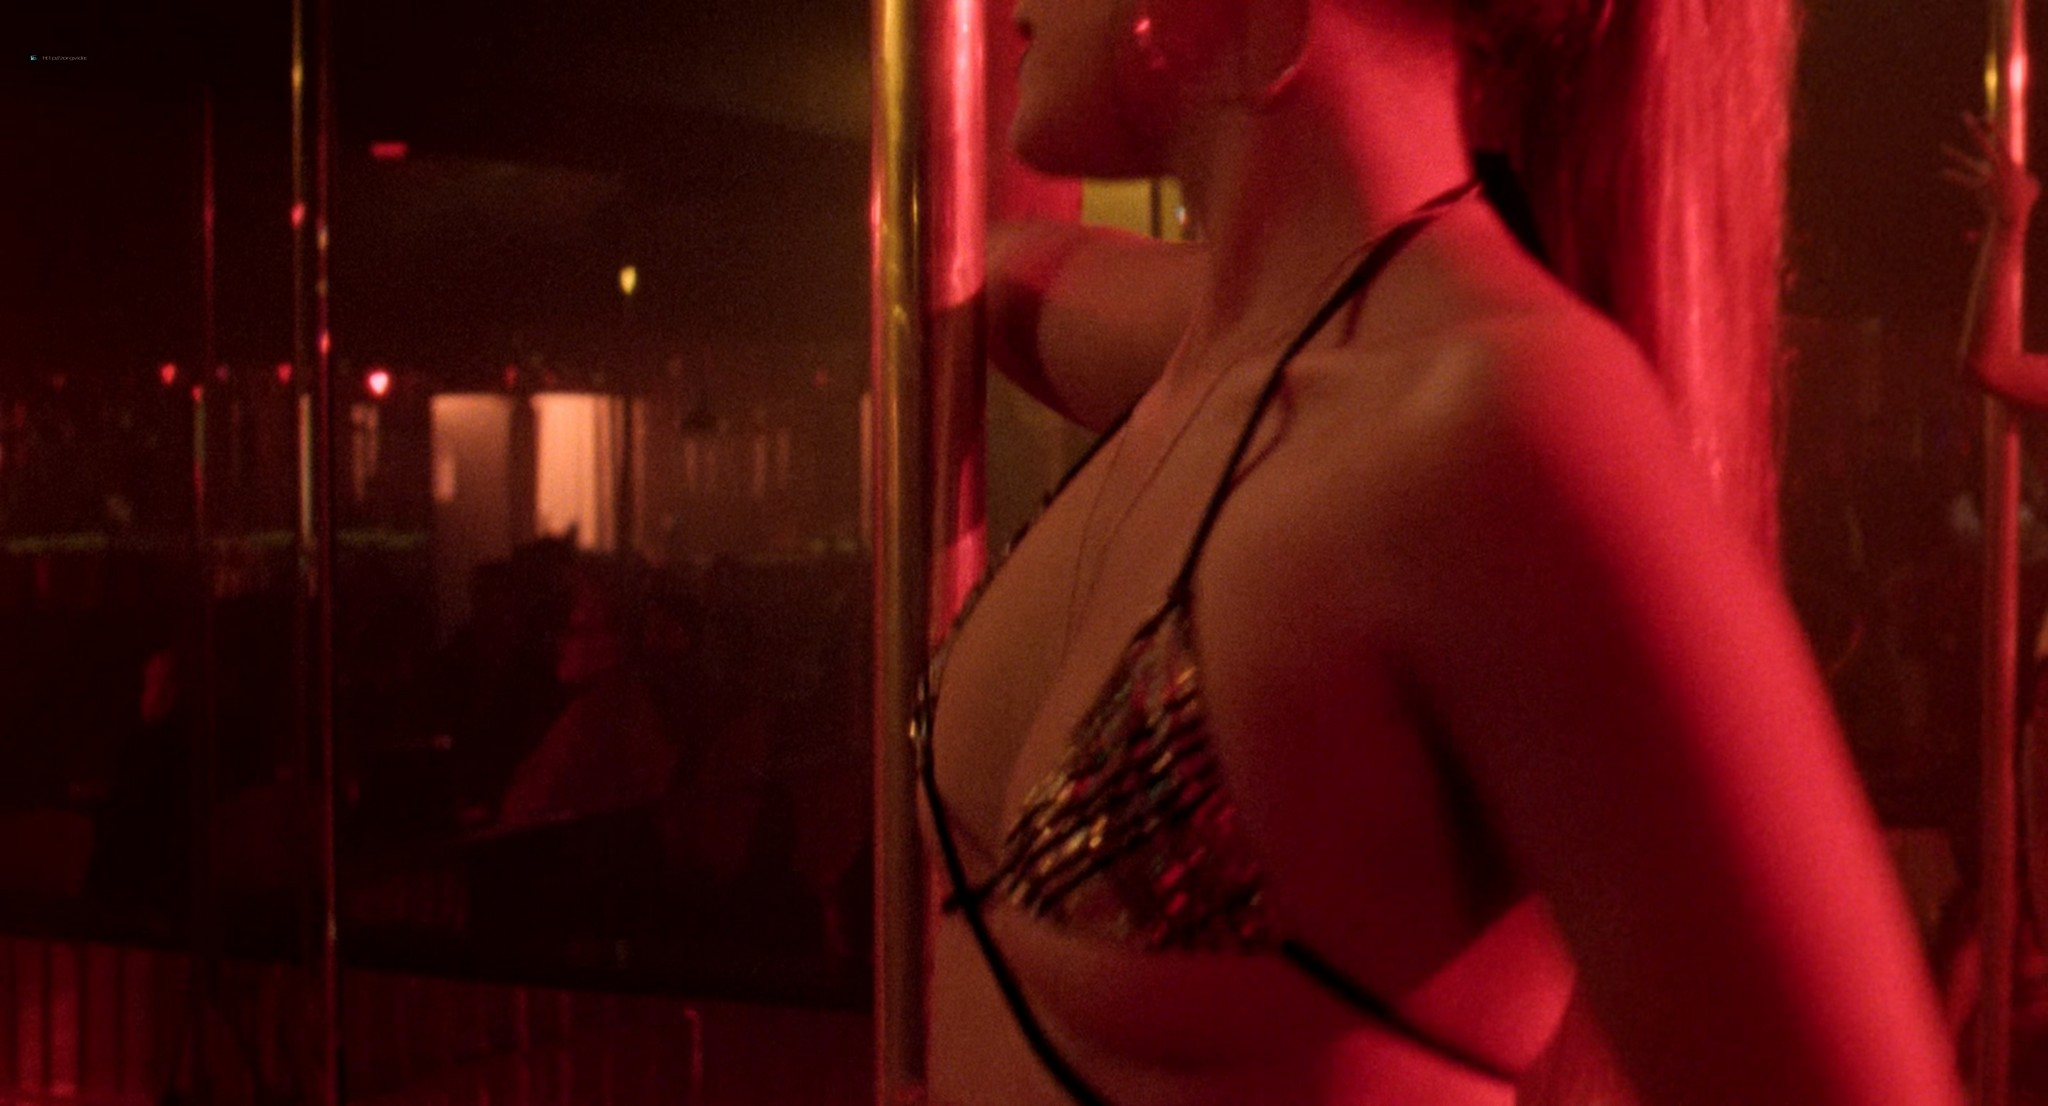 Riley Keough hot and sex Taylour Paige sexy Zola 2020 UHD 2160p Web 3